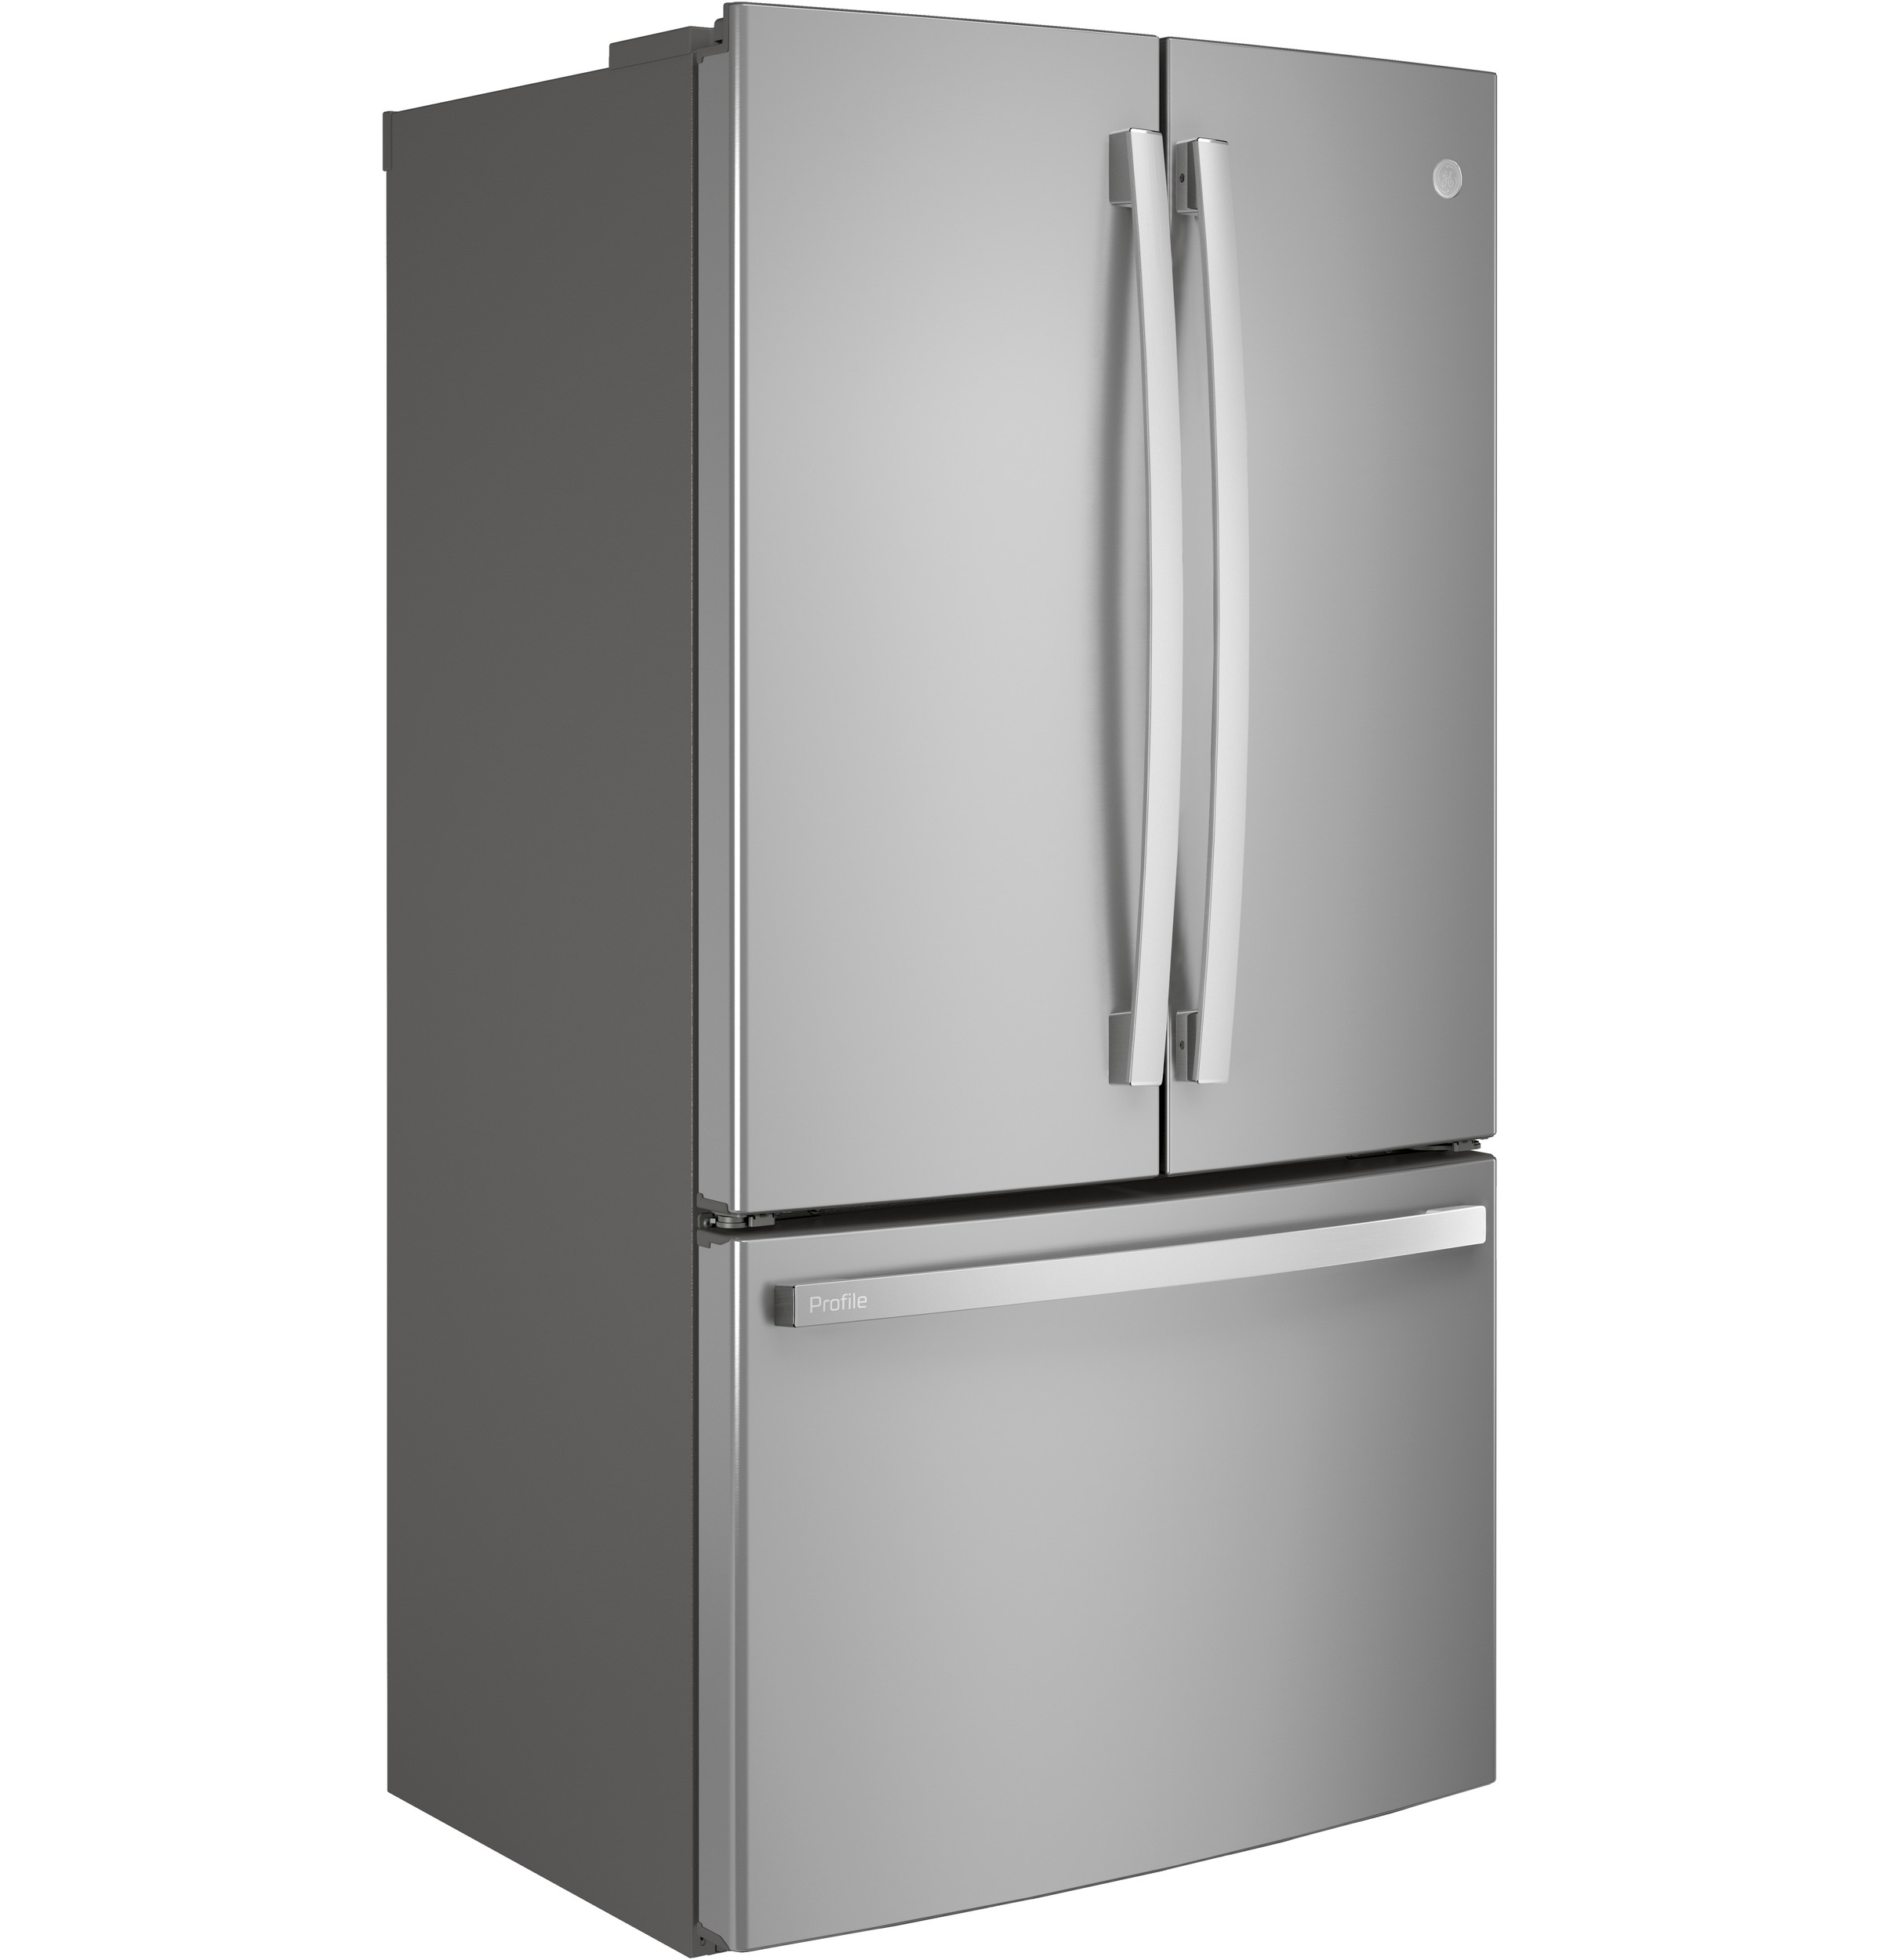 Model: PWE23KYNFS | GE Profile GE Profile™ ENERGY STAR® 23.1 Cu. Ft. Counter-Depth French-Door Refrigerator